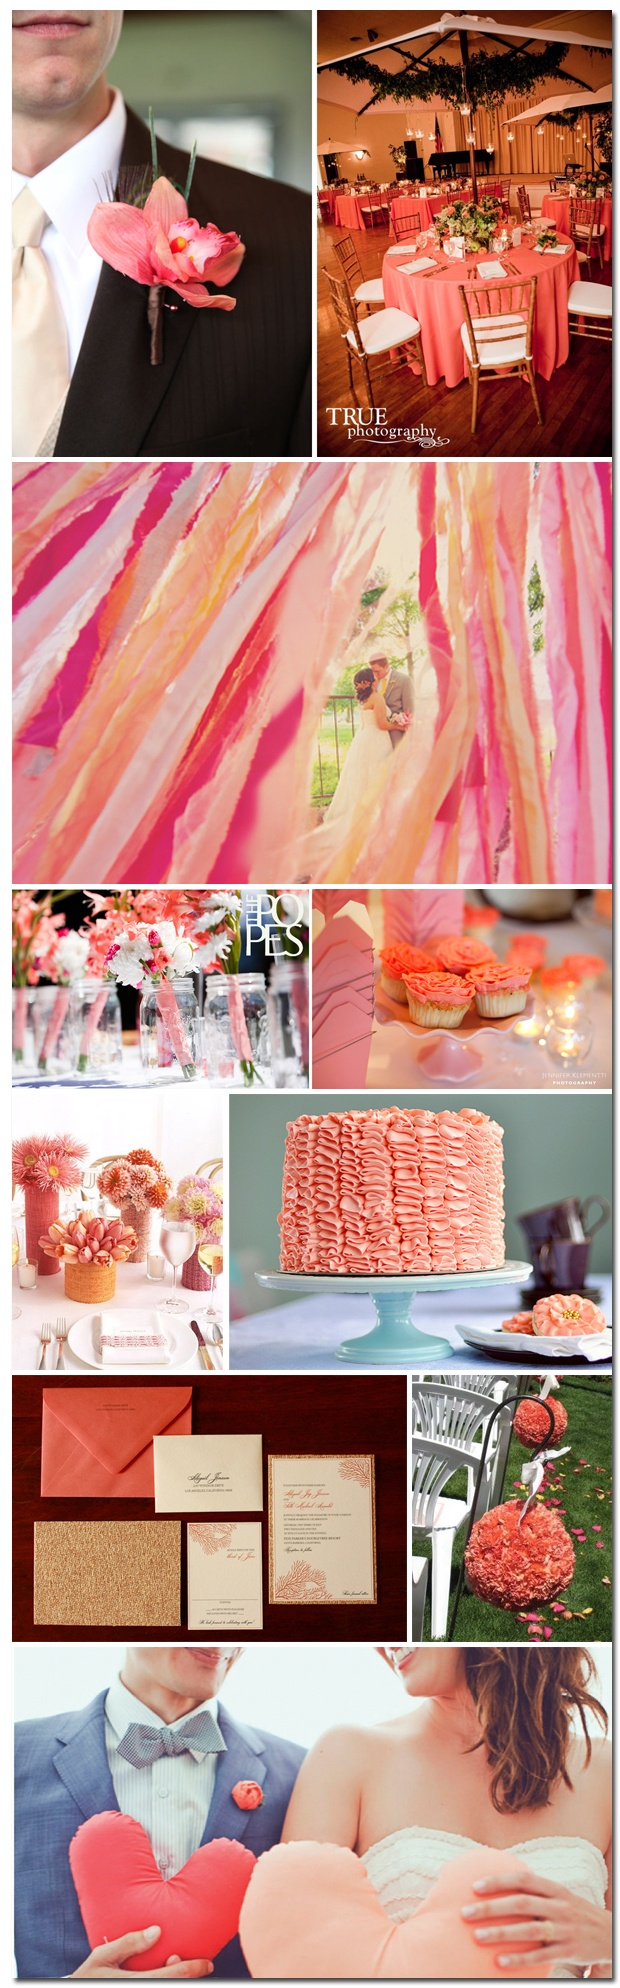 I adore the streamers in this inspiration board.  Apparently coral is the hot color for spring/summer 2011 weddings.